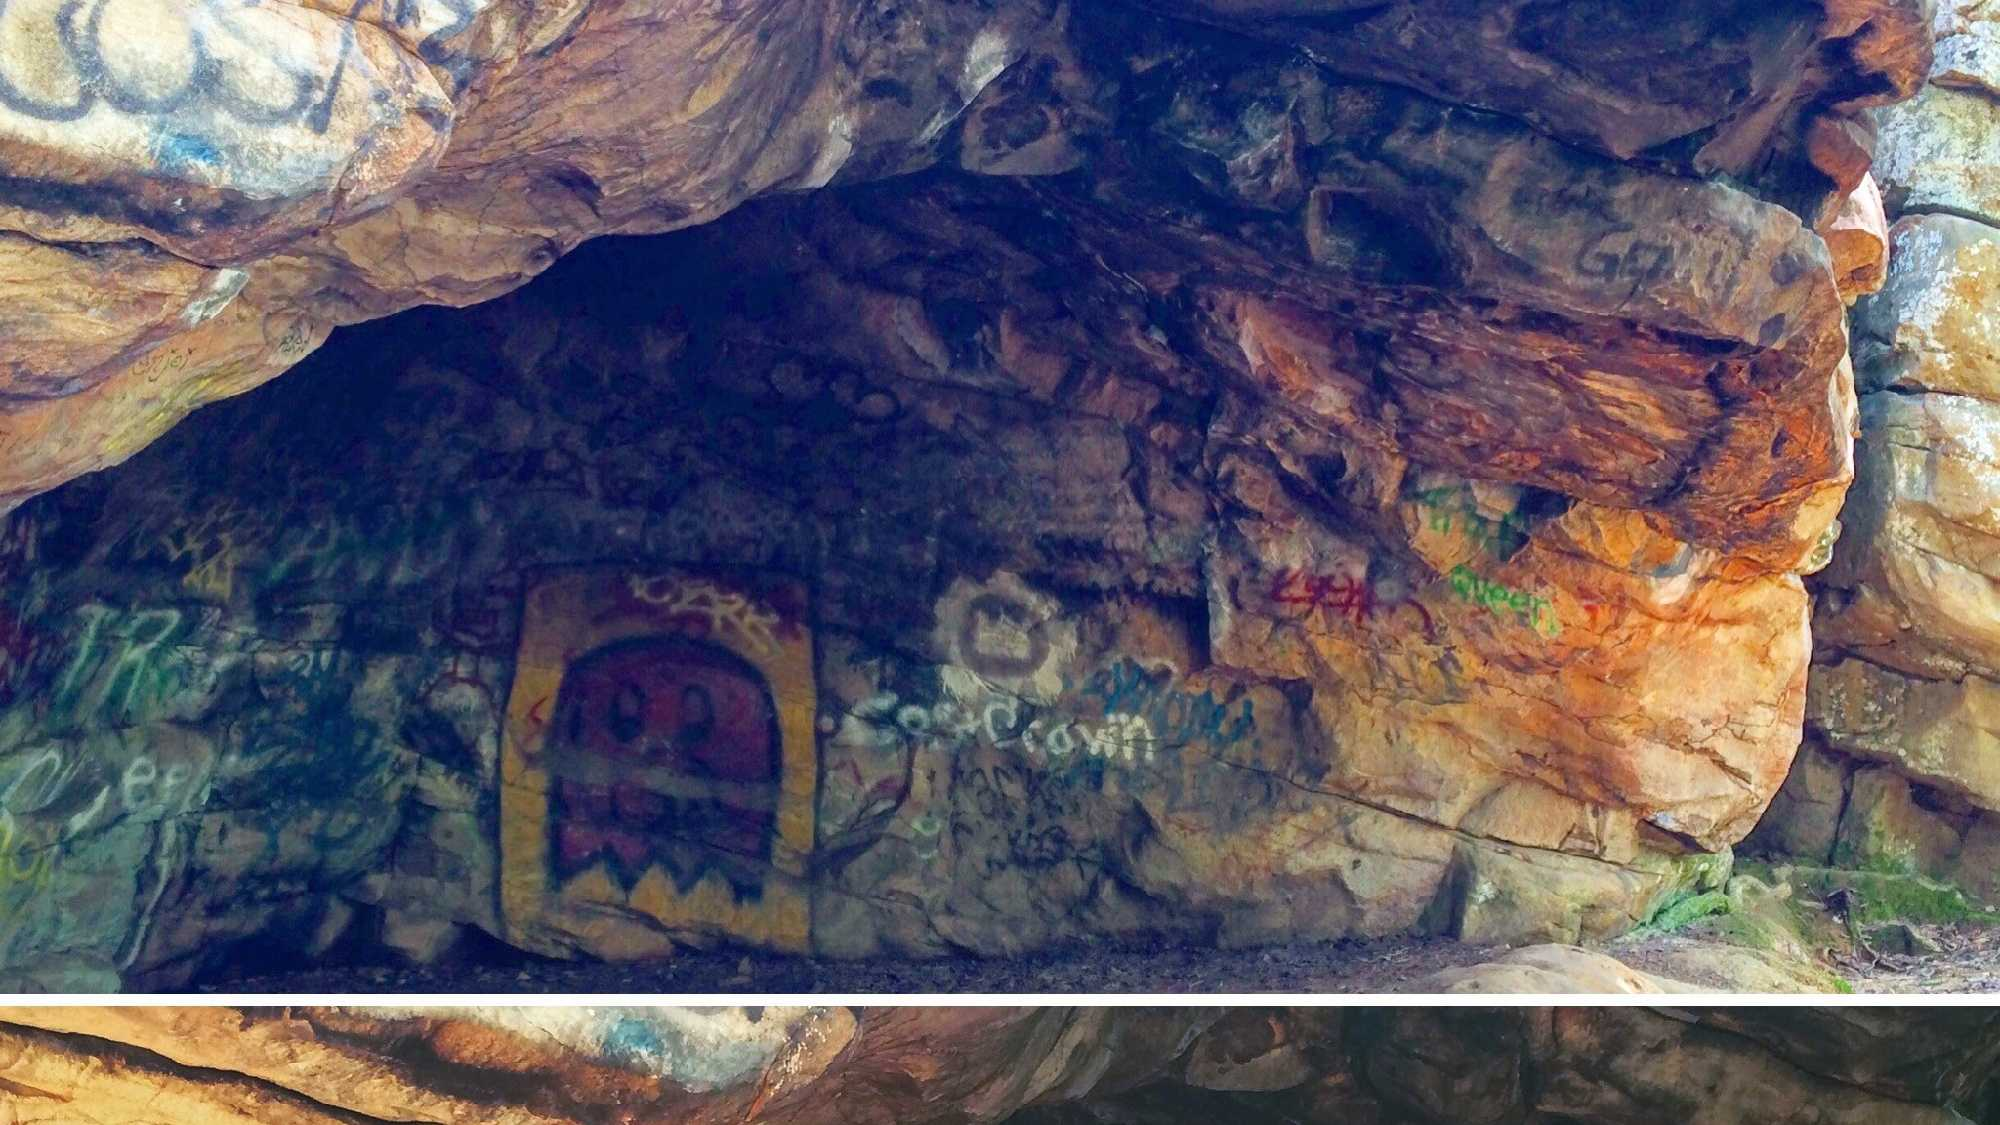 Graffiti is becoming a reoccurring issue at Moss Rock Preserve in Hoover.